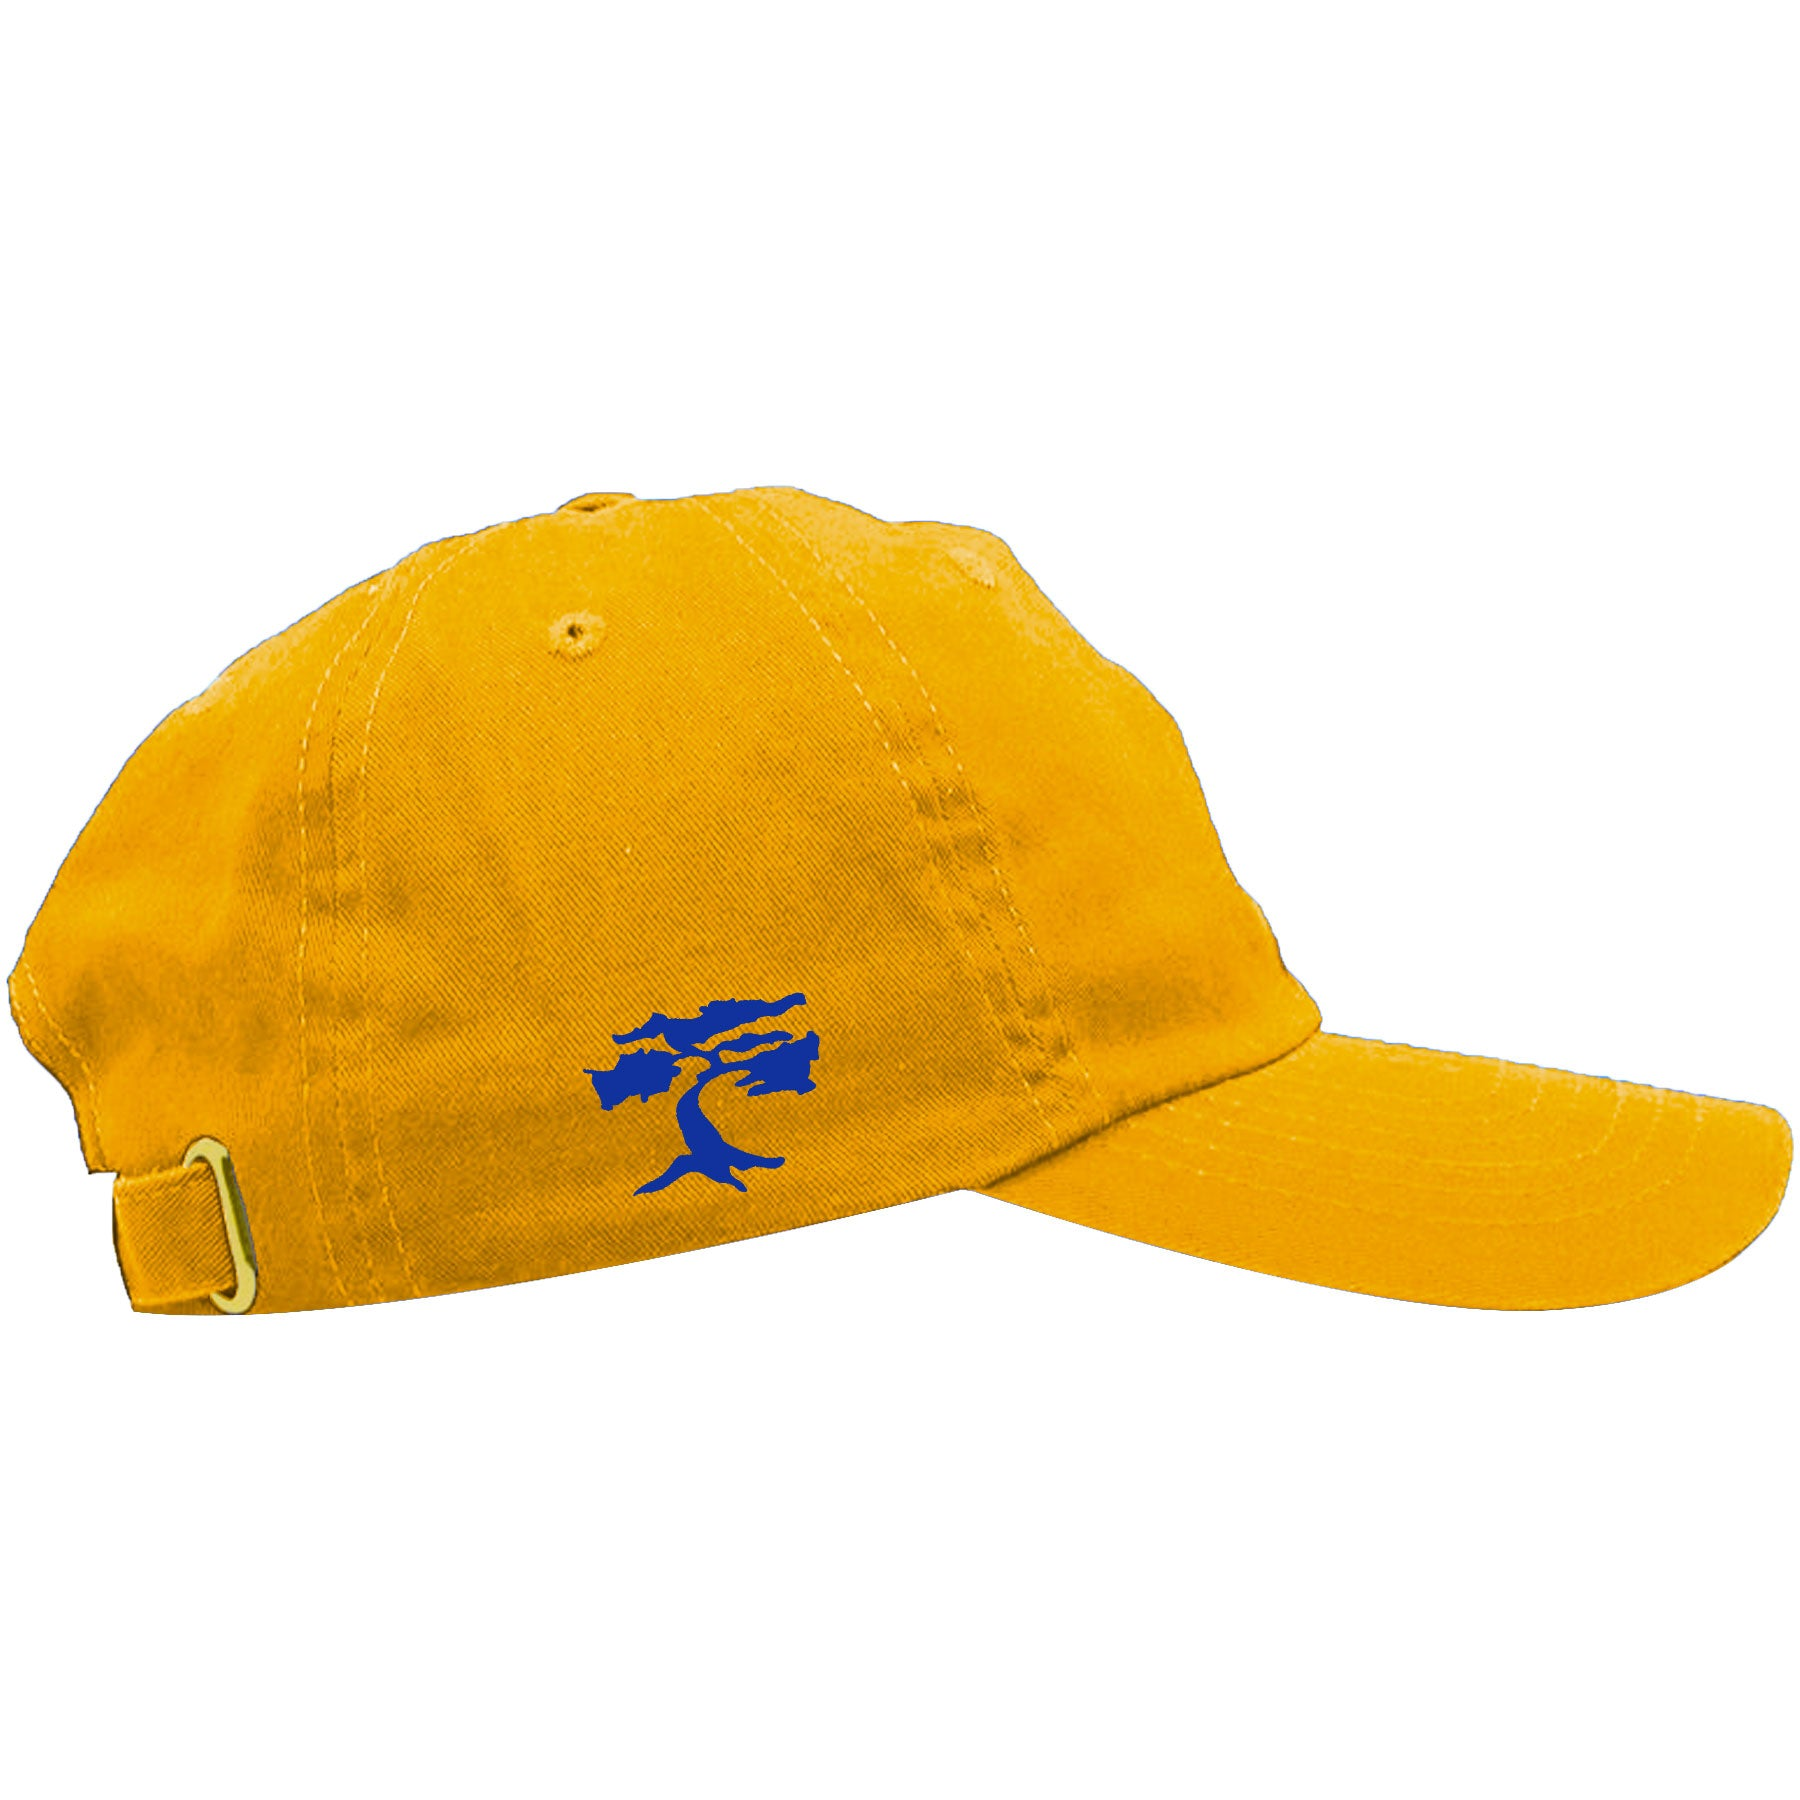 47c5a9d2c70 Jordan 5 Alternate Laney JSP Sneaker Matching Air Sushi Yellow Dad Hat   Embroidered on the right side of the jordan 5 laney sneaker matching dad  hat is the ...